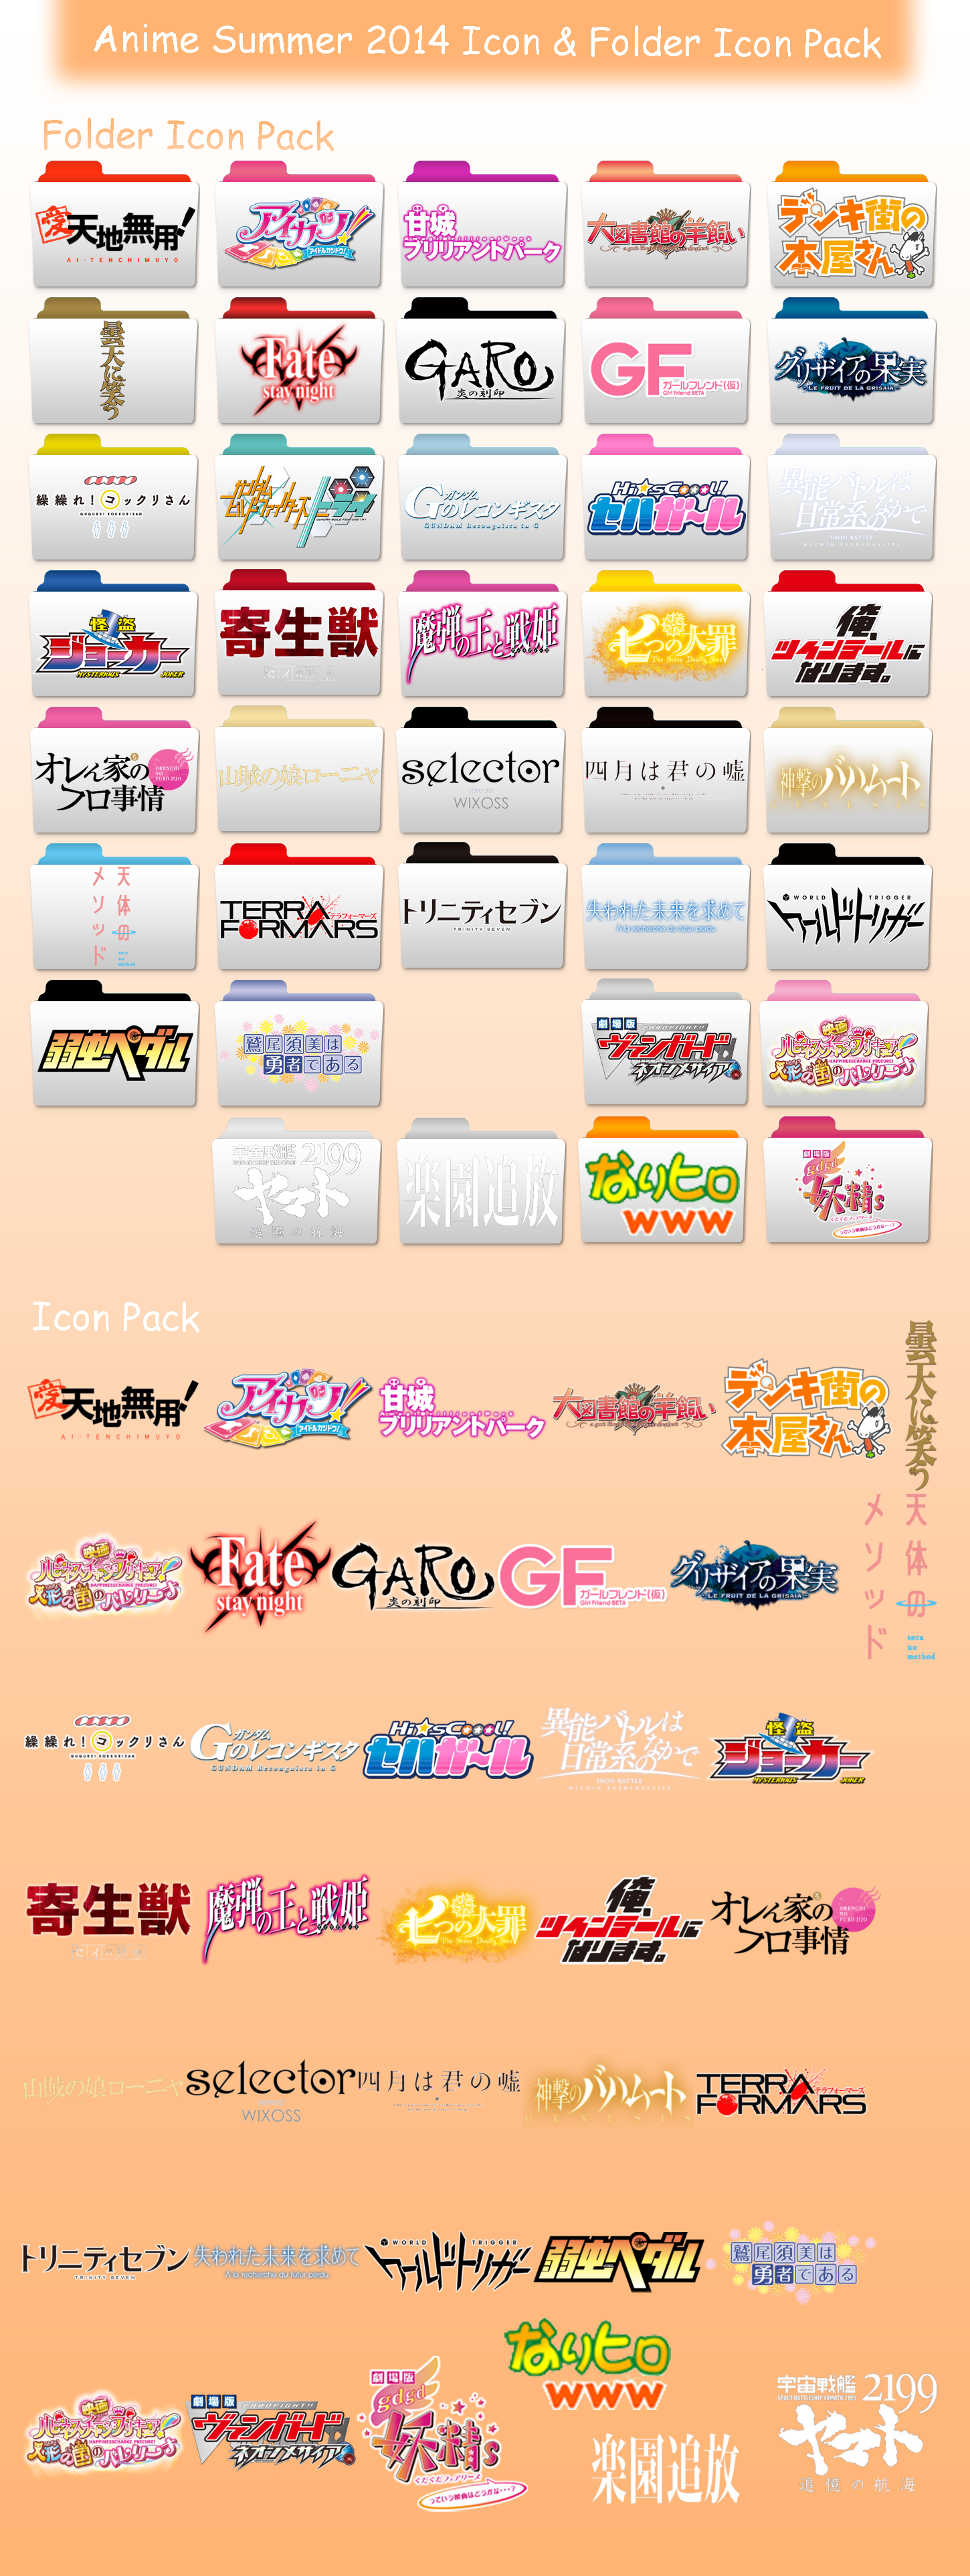 Anime Fall 2014 Icon Folder Pack